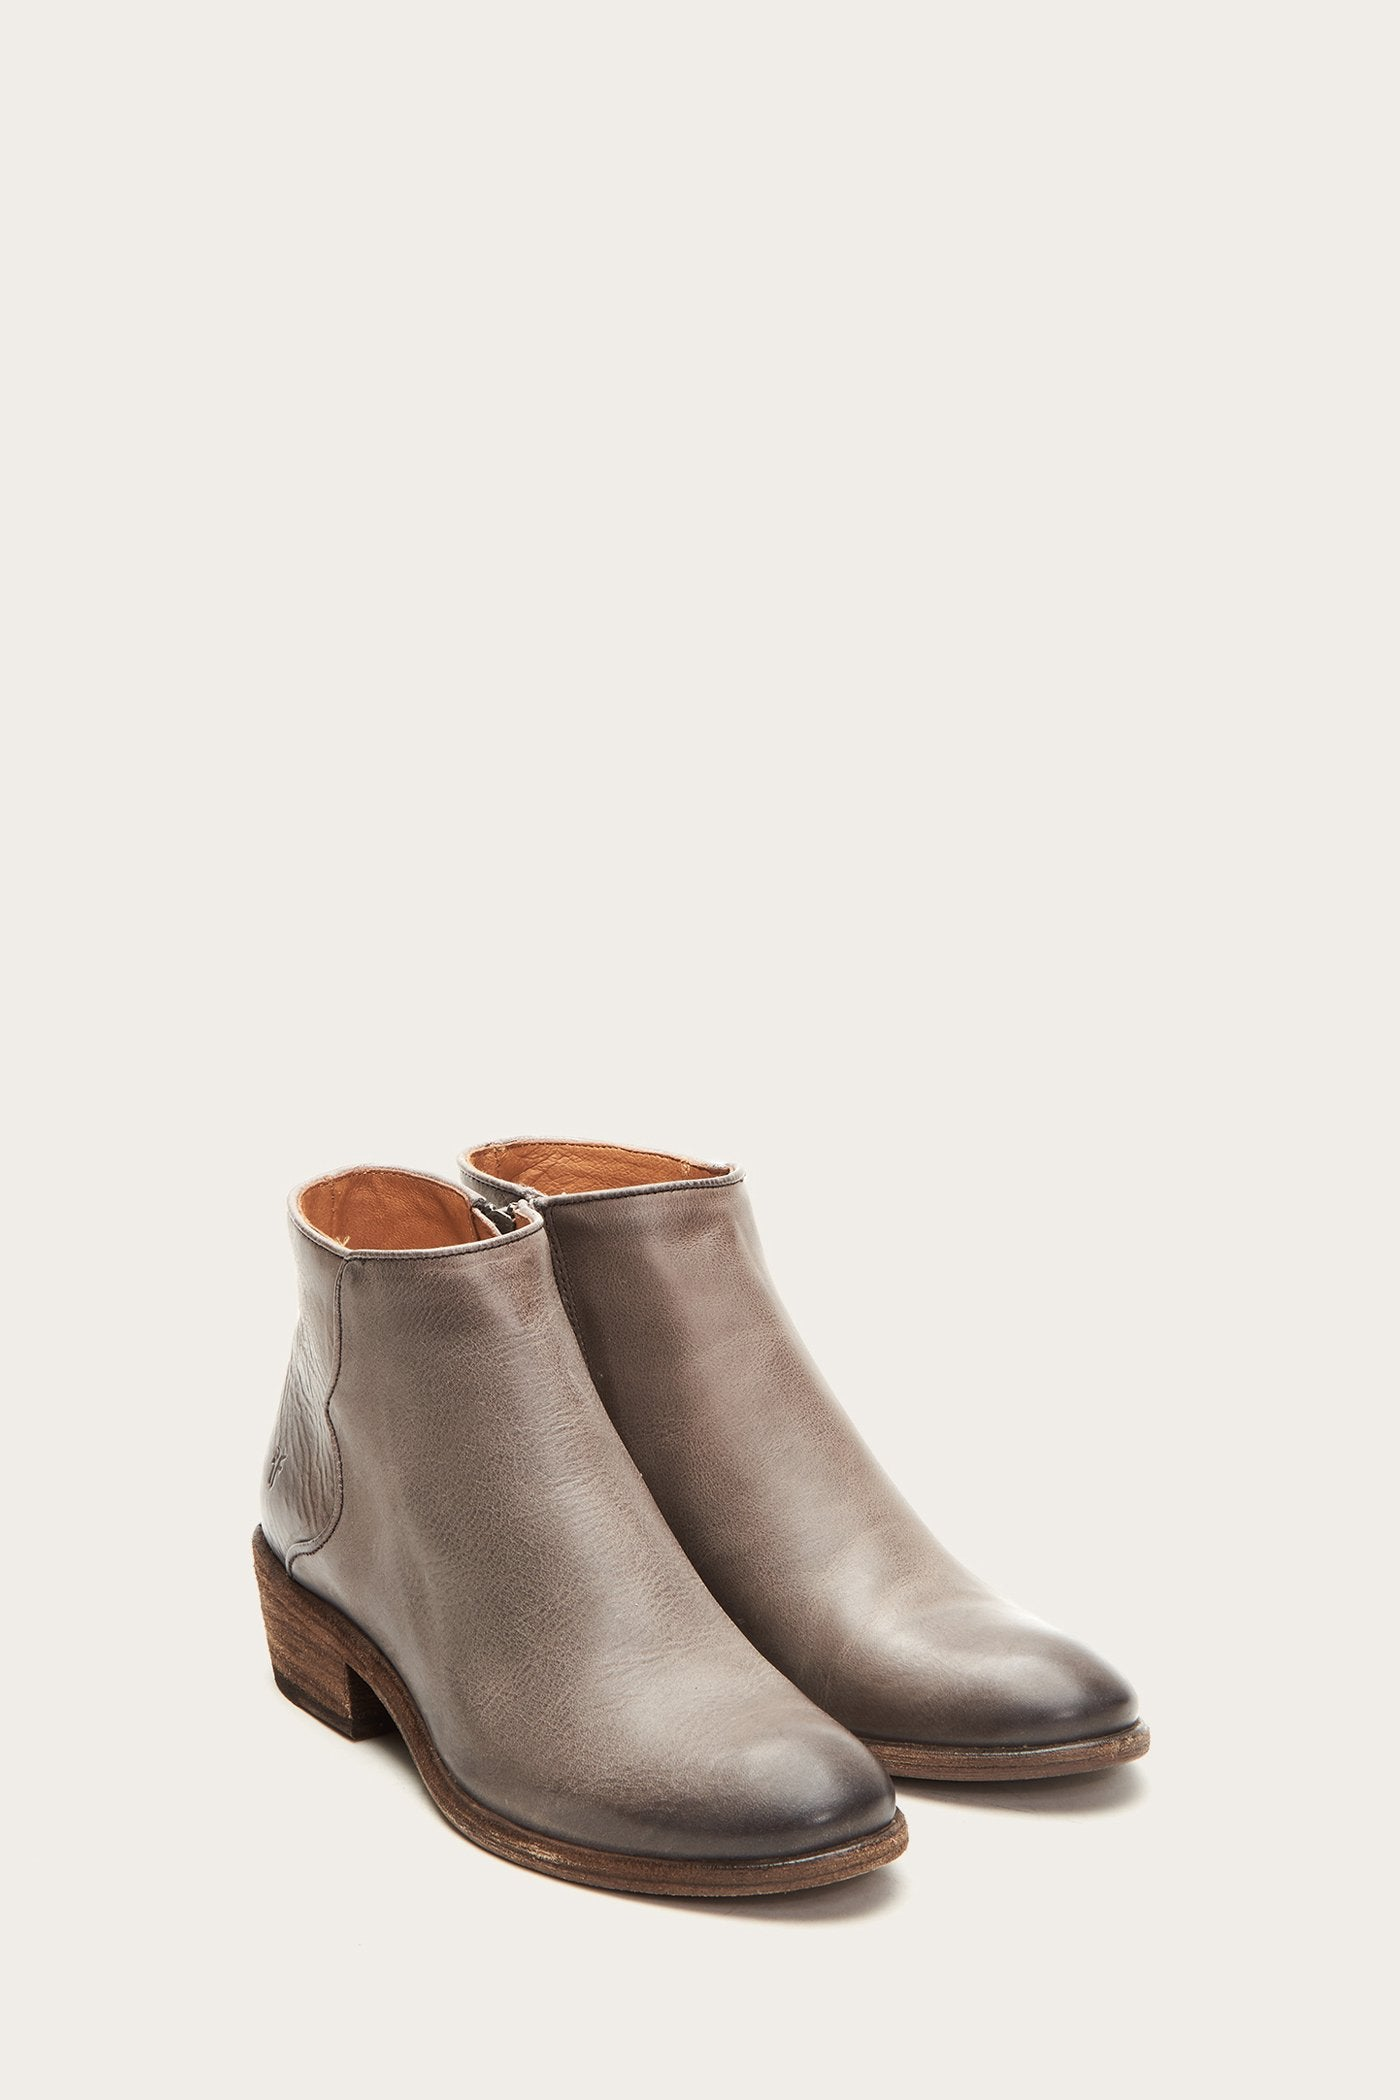 Frye - Carson Piping Bootie